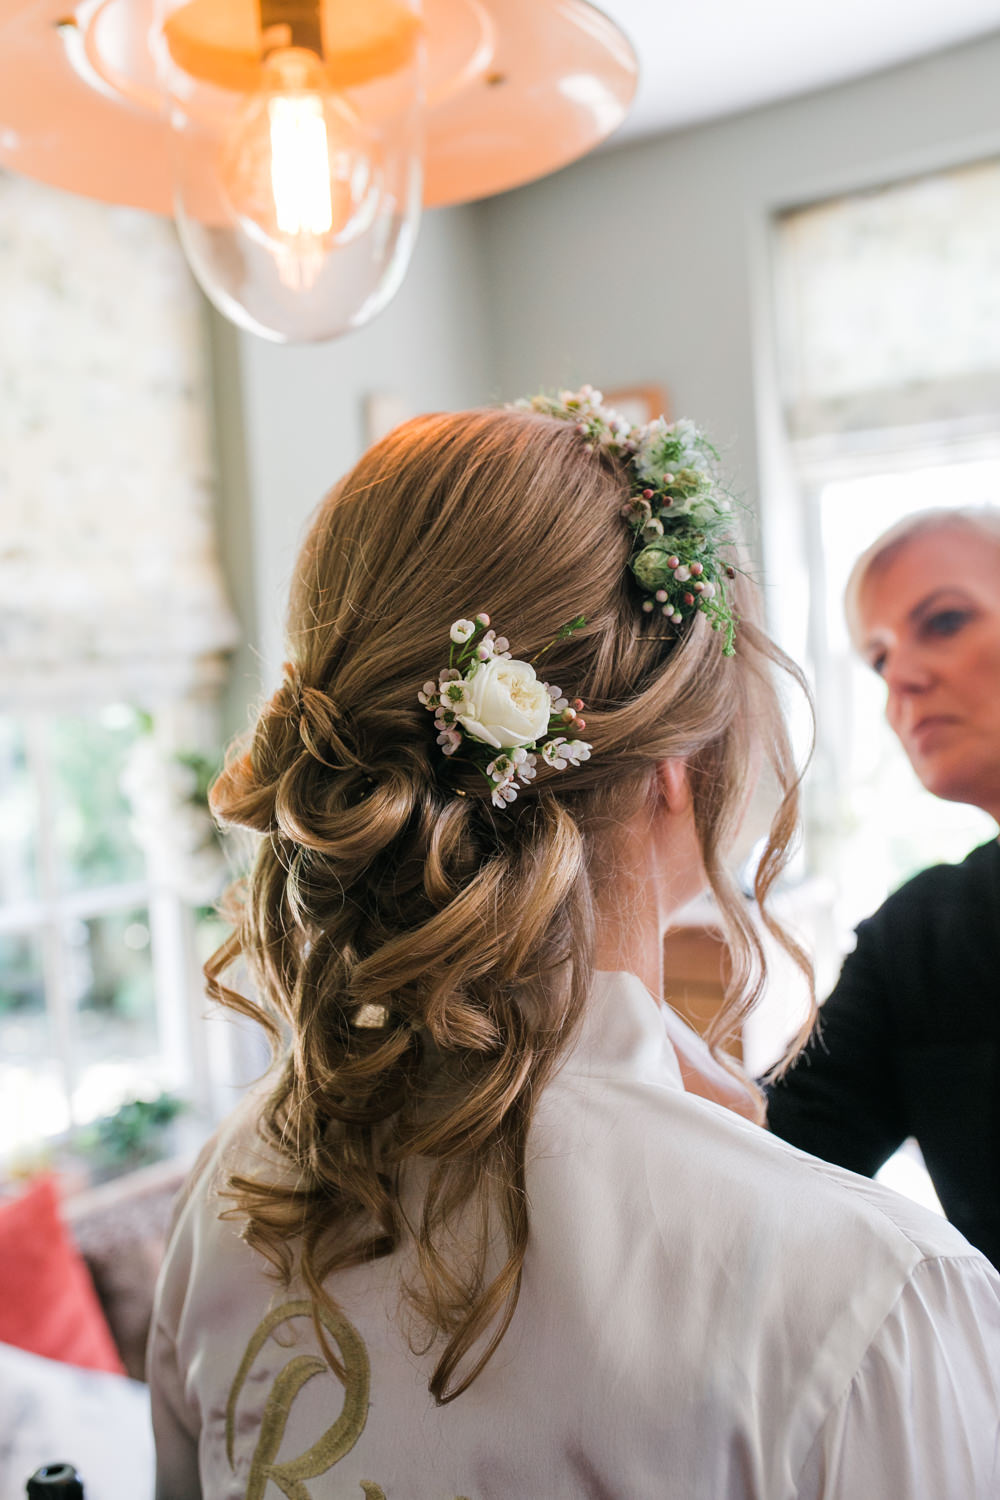 Bride Bridal Hair Up Do Flowers Half Hair Crown Lincolnshire Tipi Wedding Jessy Jones Photography